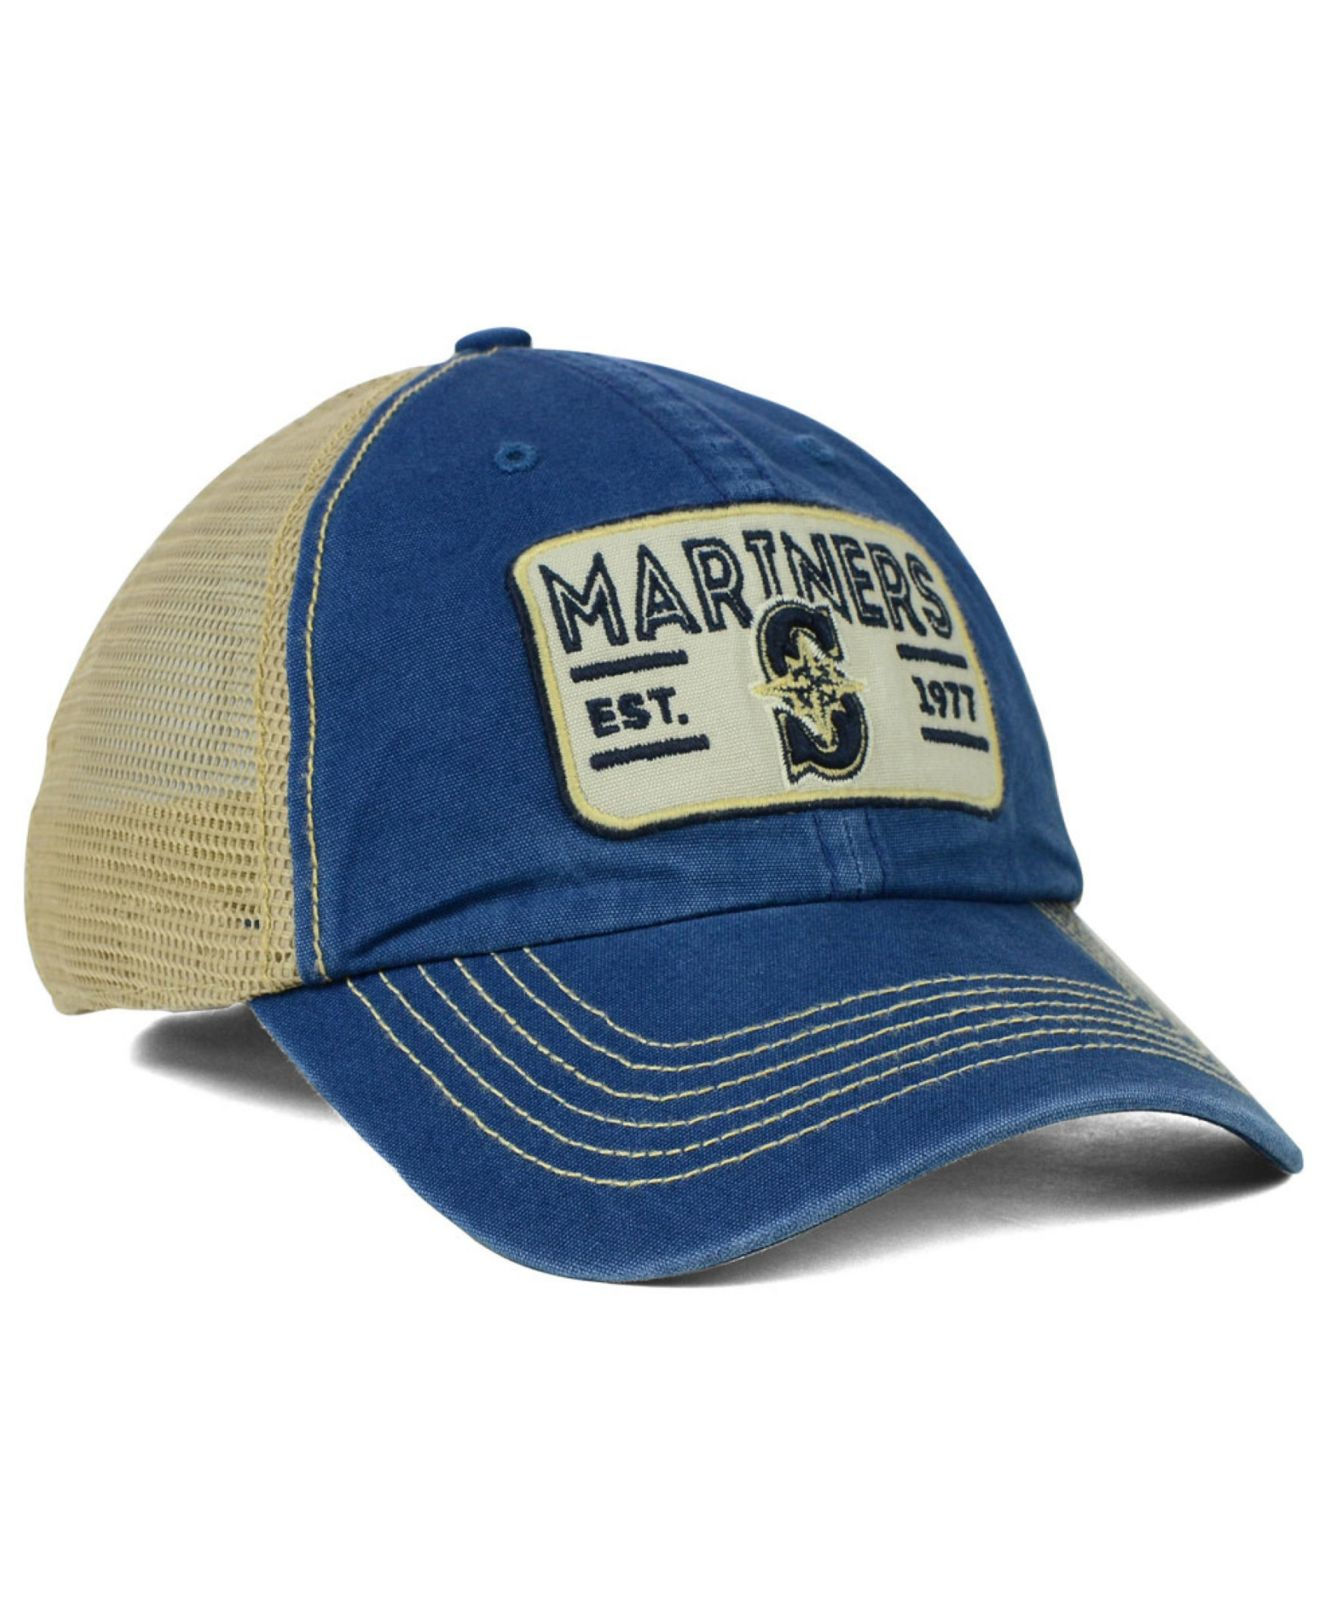 quality design a95ed 31ec7 ... real lyst 47 brand seattle mariners goin yard mesh cap in blue for men  57c59 1813a